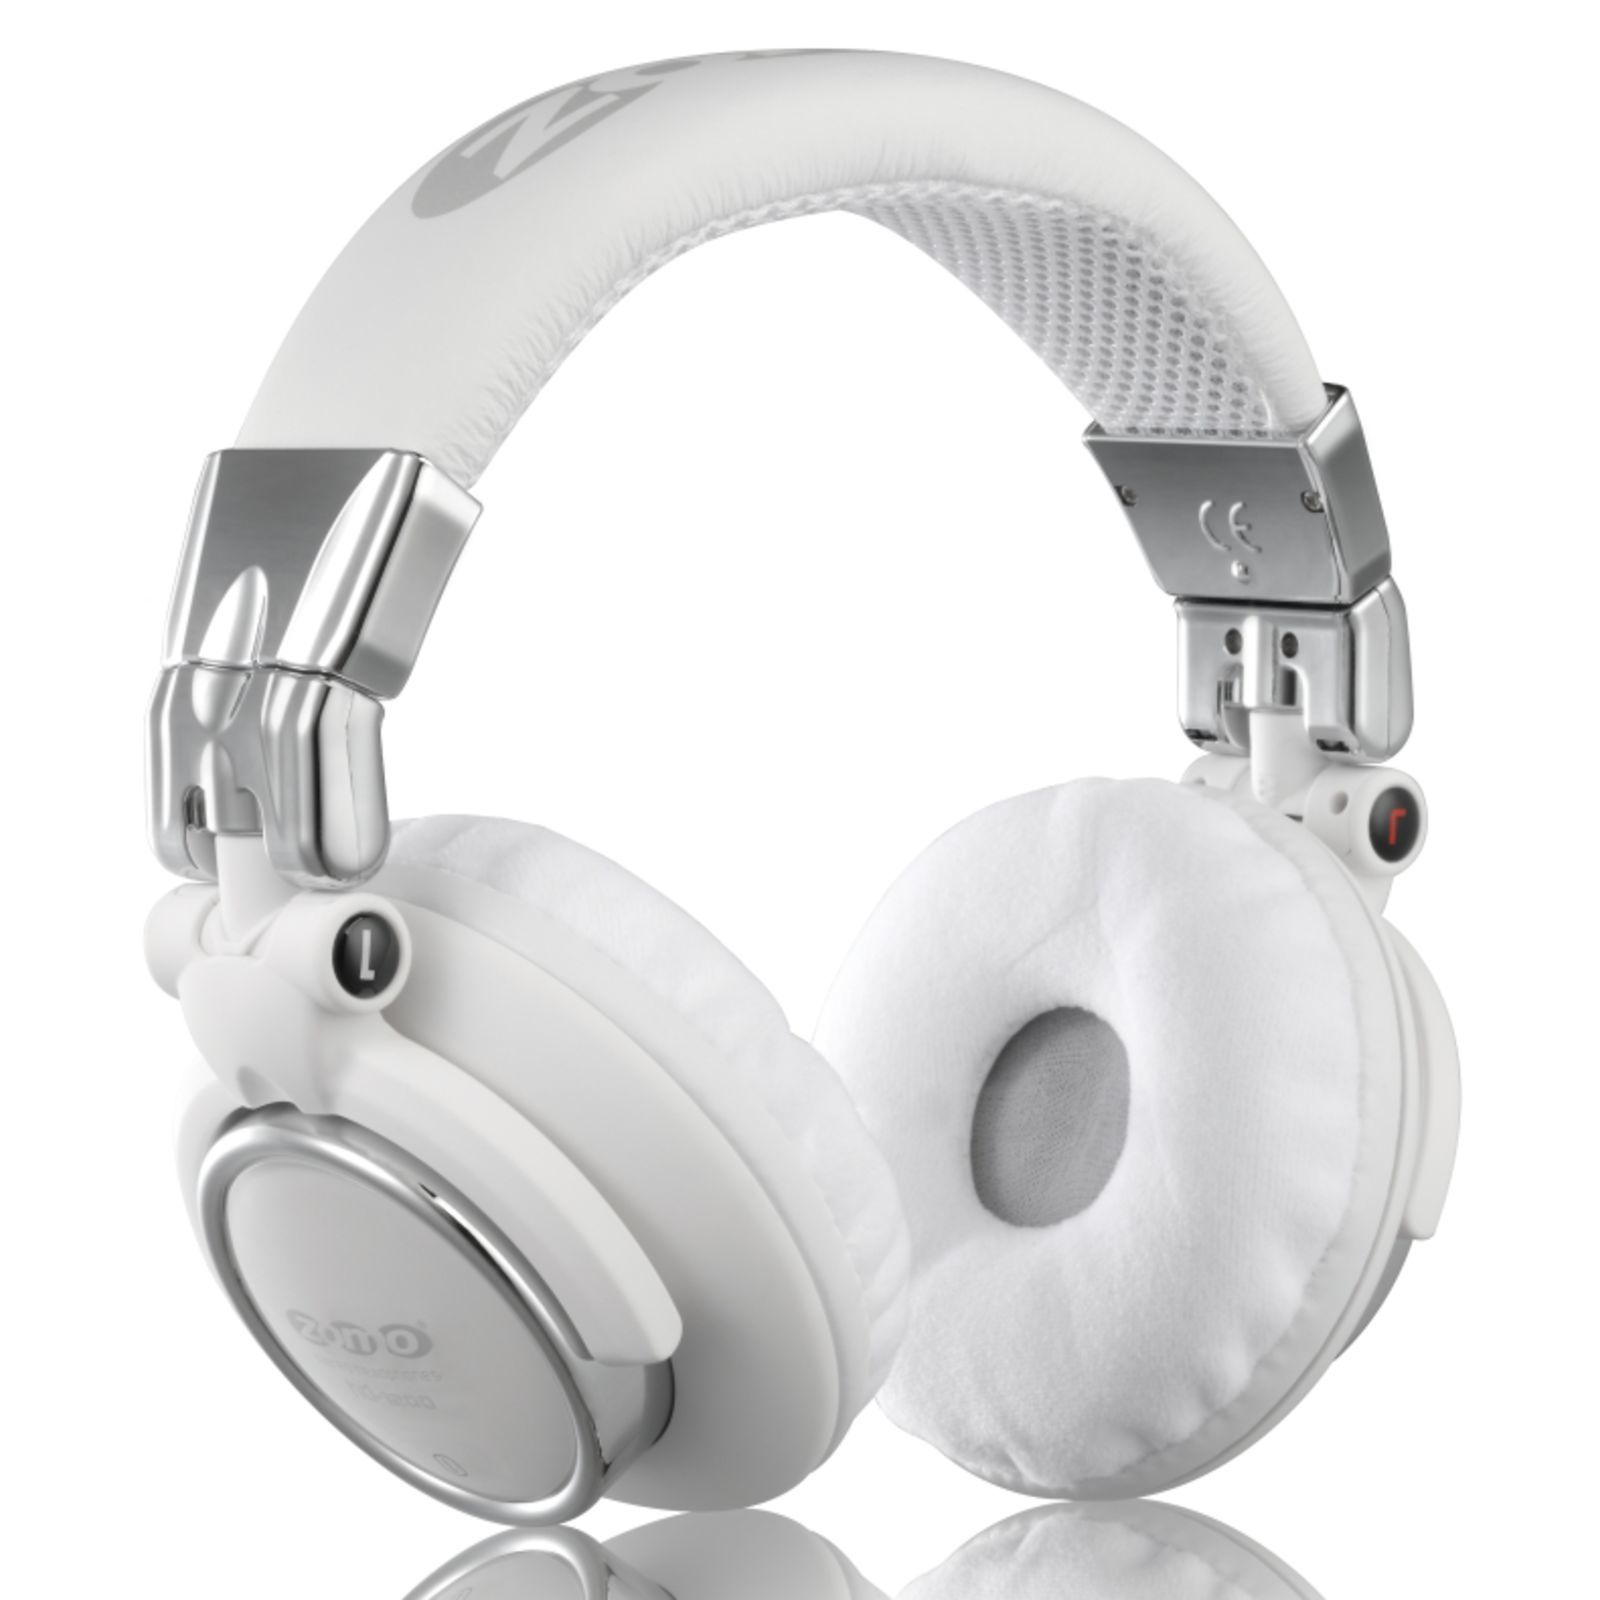 Zomo HD-1200 White Chrome Stereo Headphones Produktbild